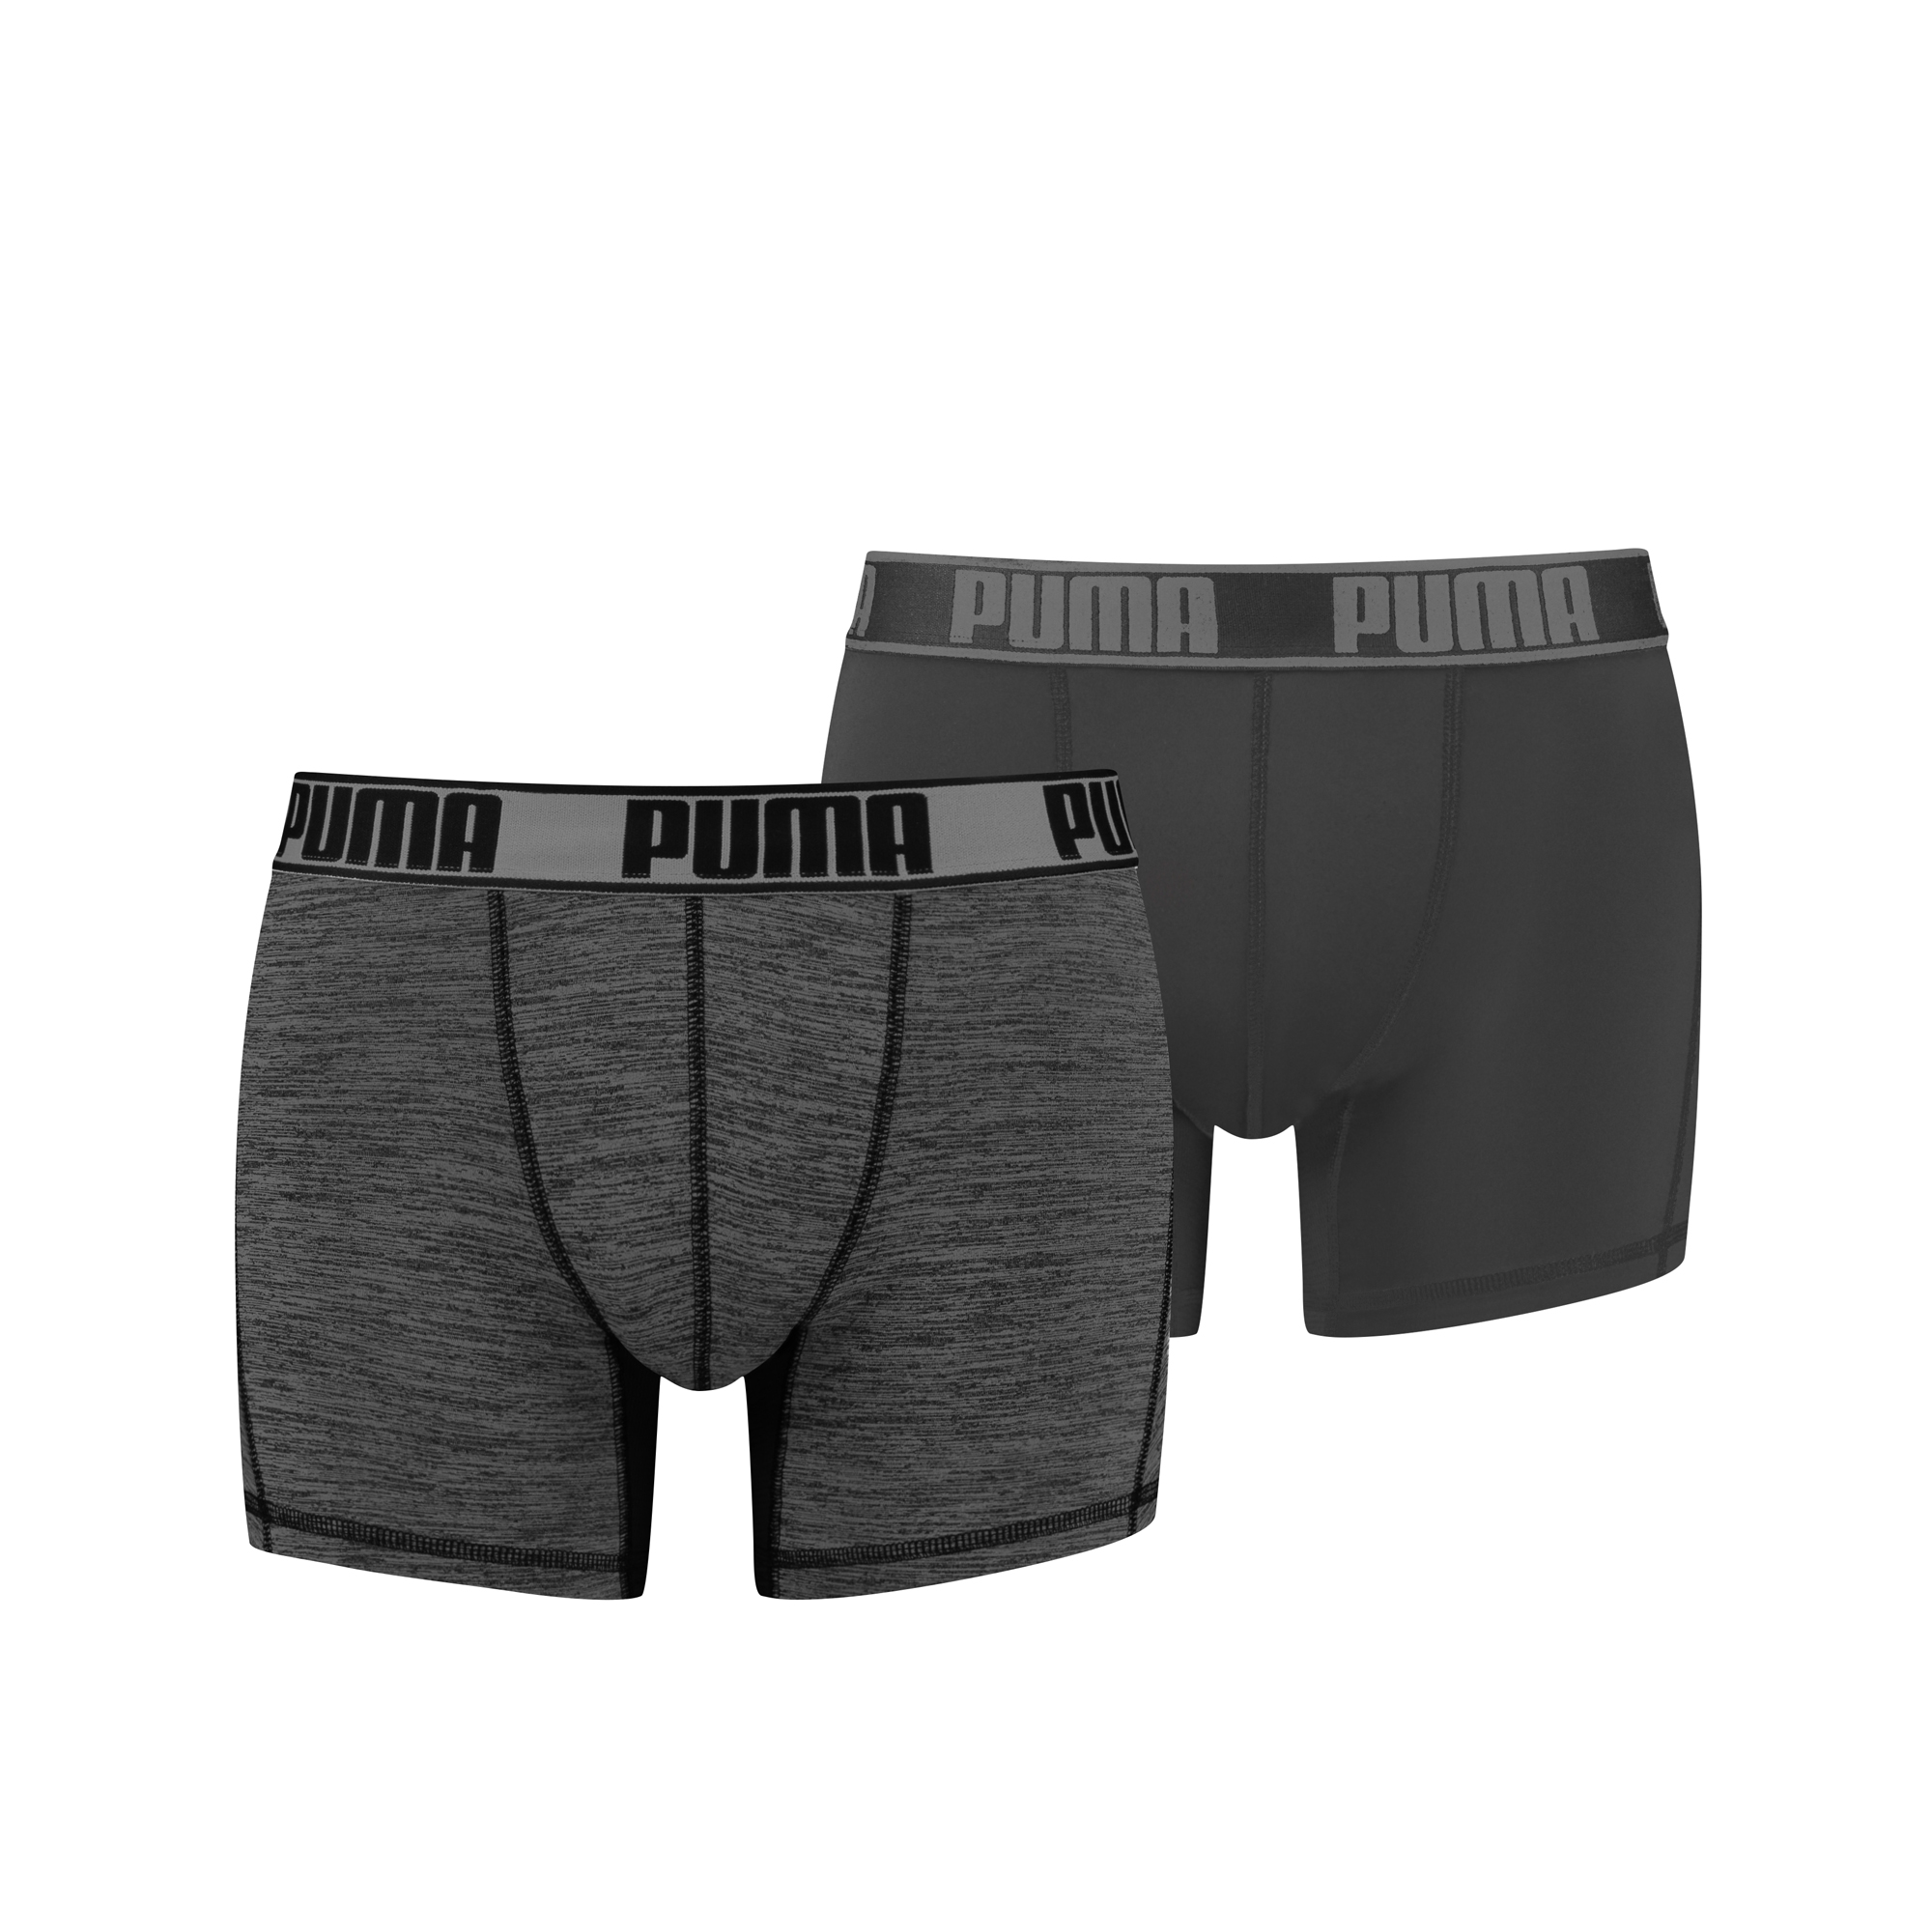 Puma Active Grizzly Melange Boxershorts Black 2-pack-S